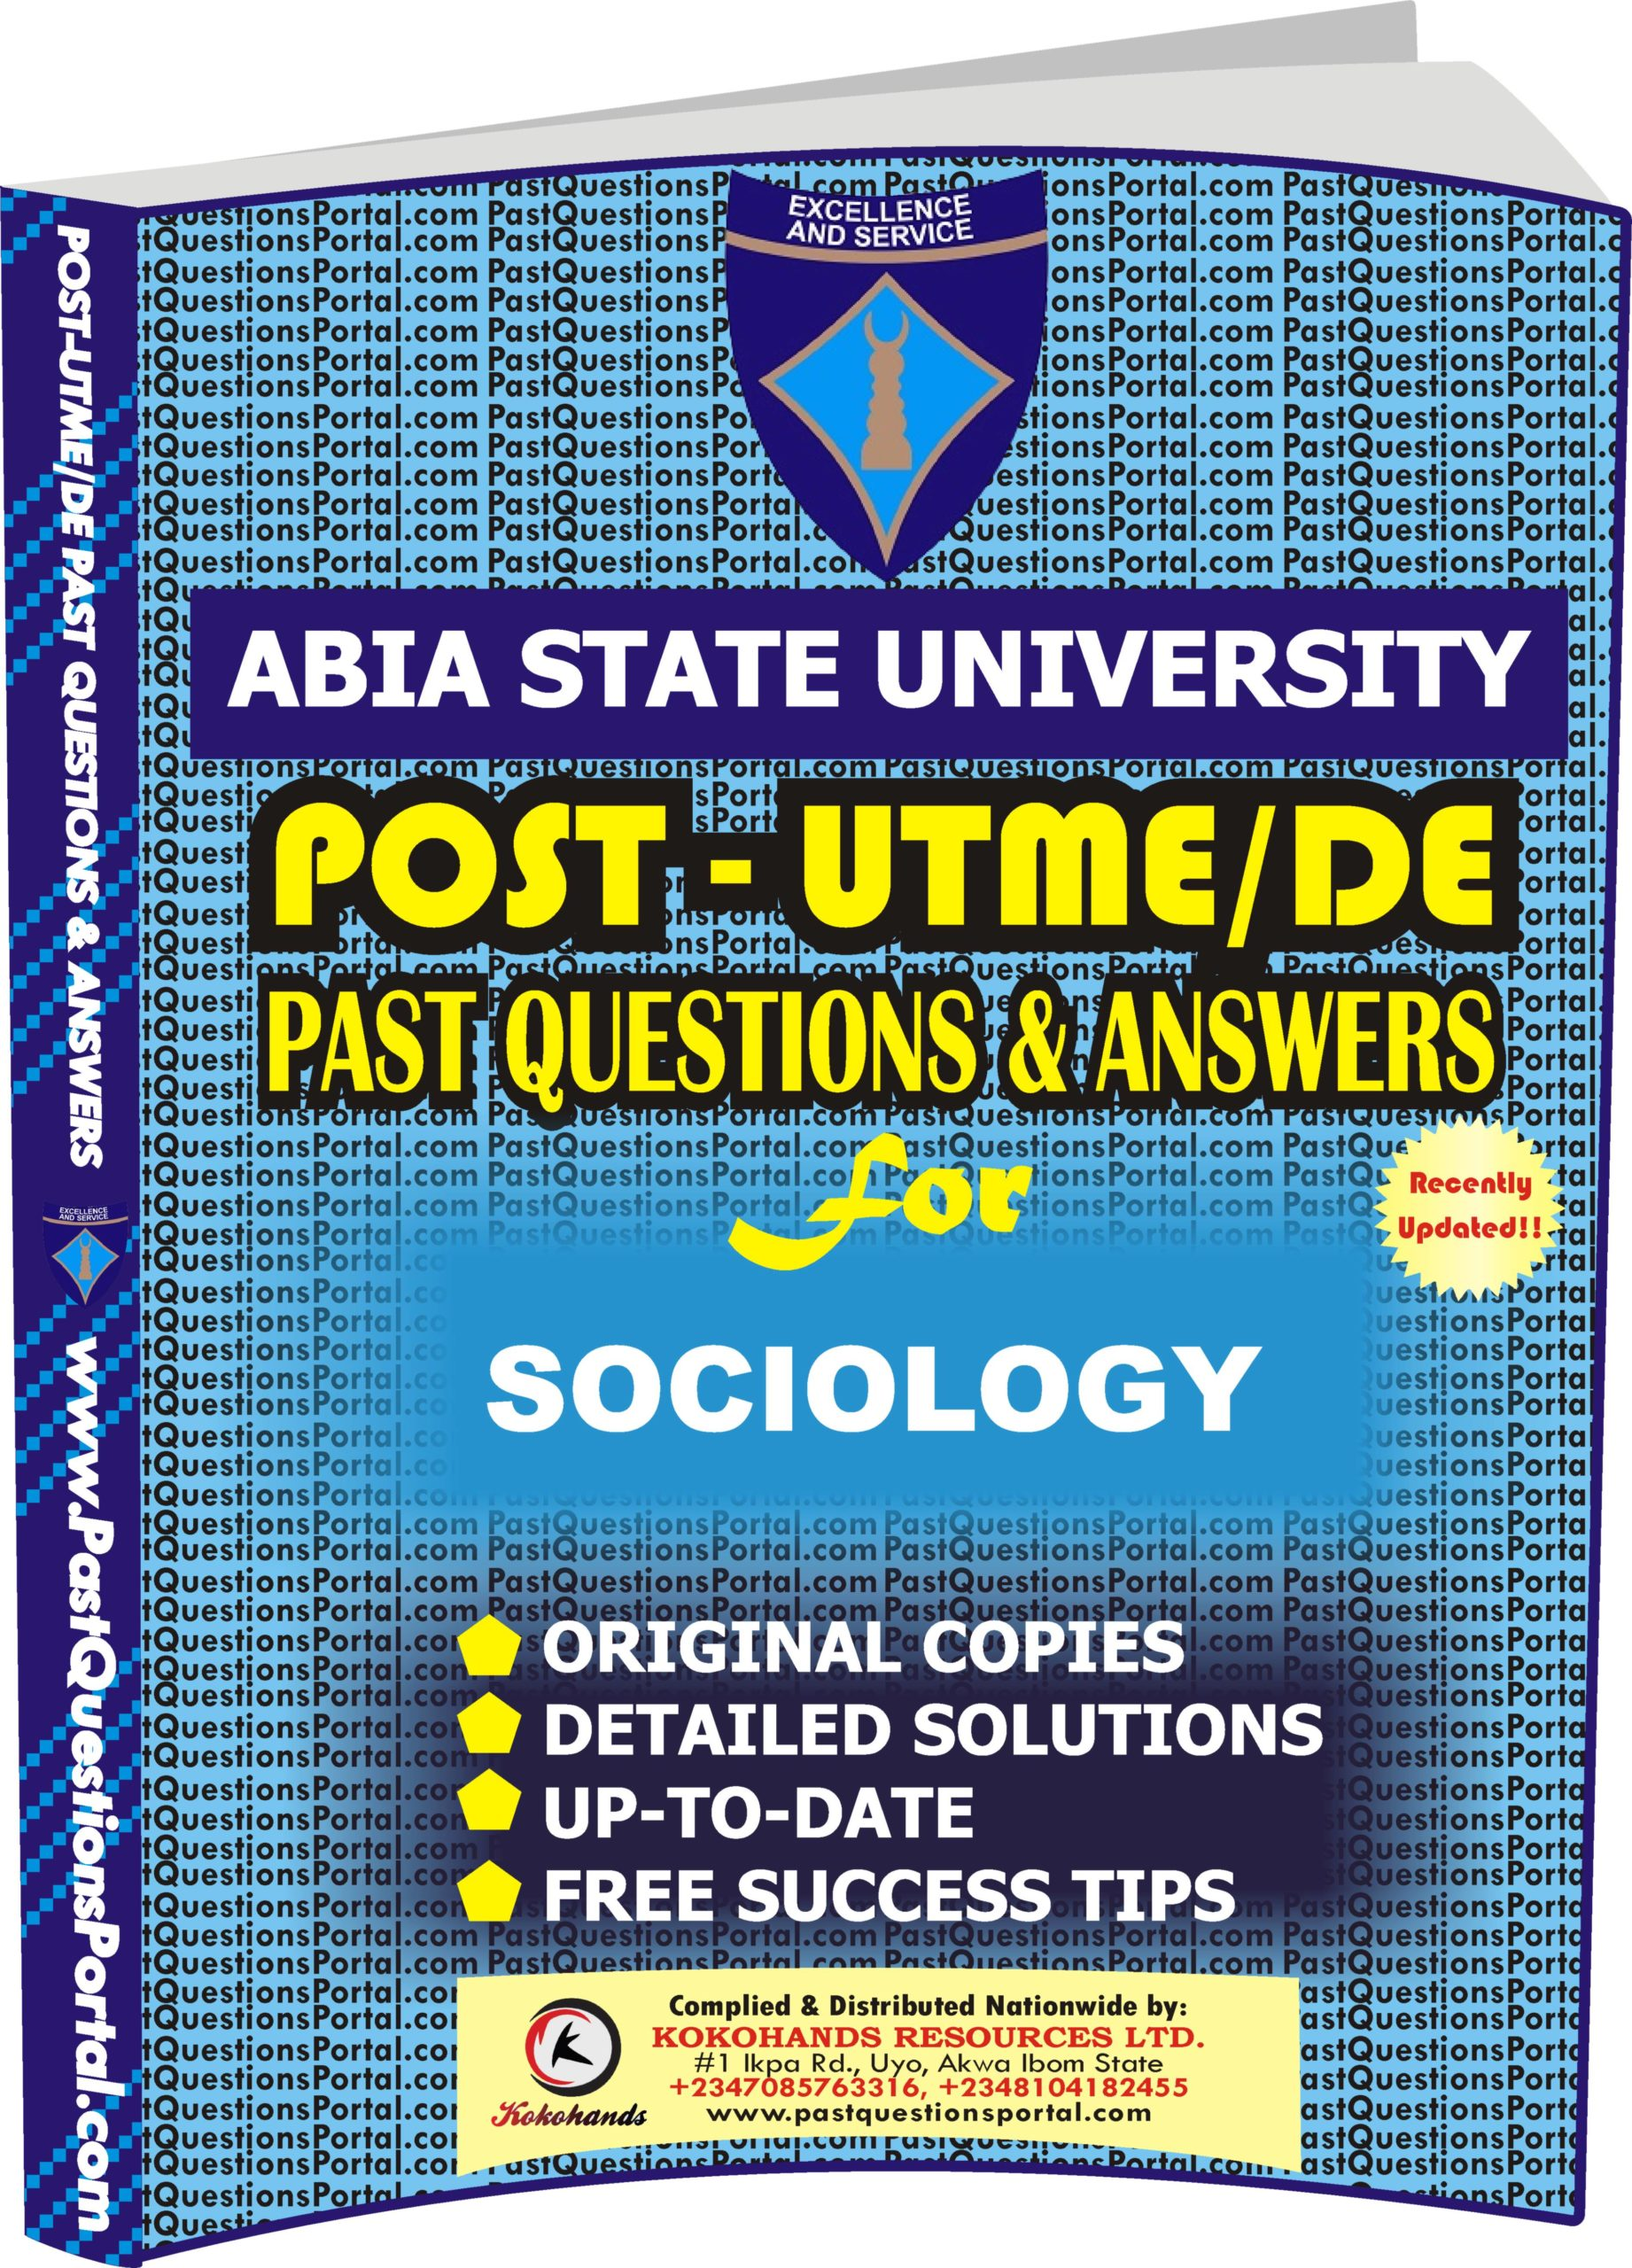 ABSU Post UTME Past Questions for SOCIOLOGY